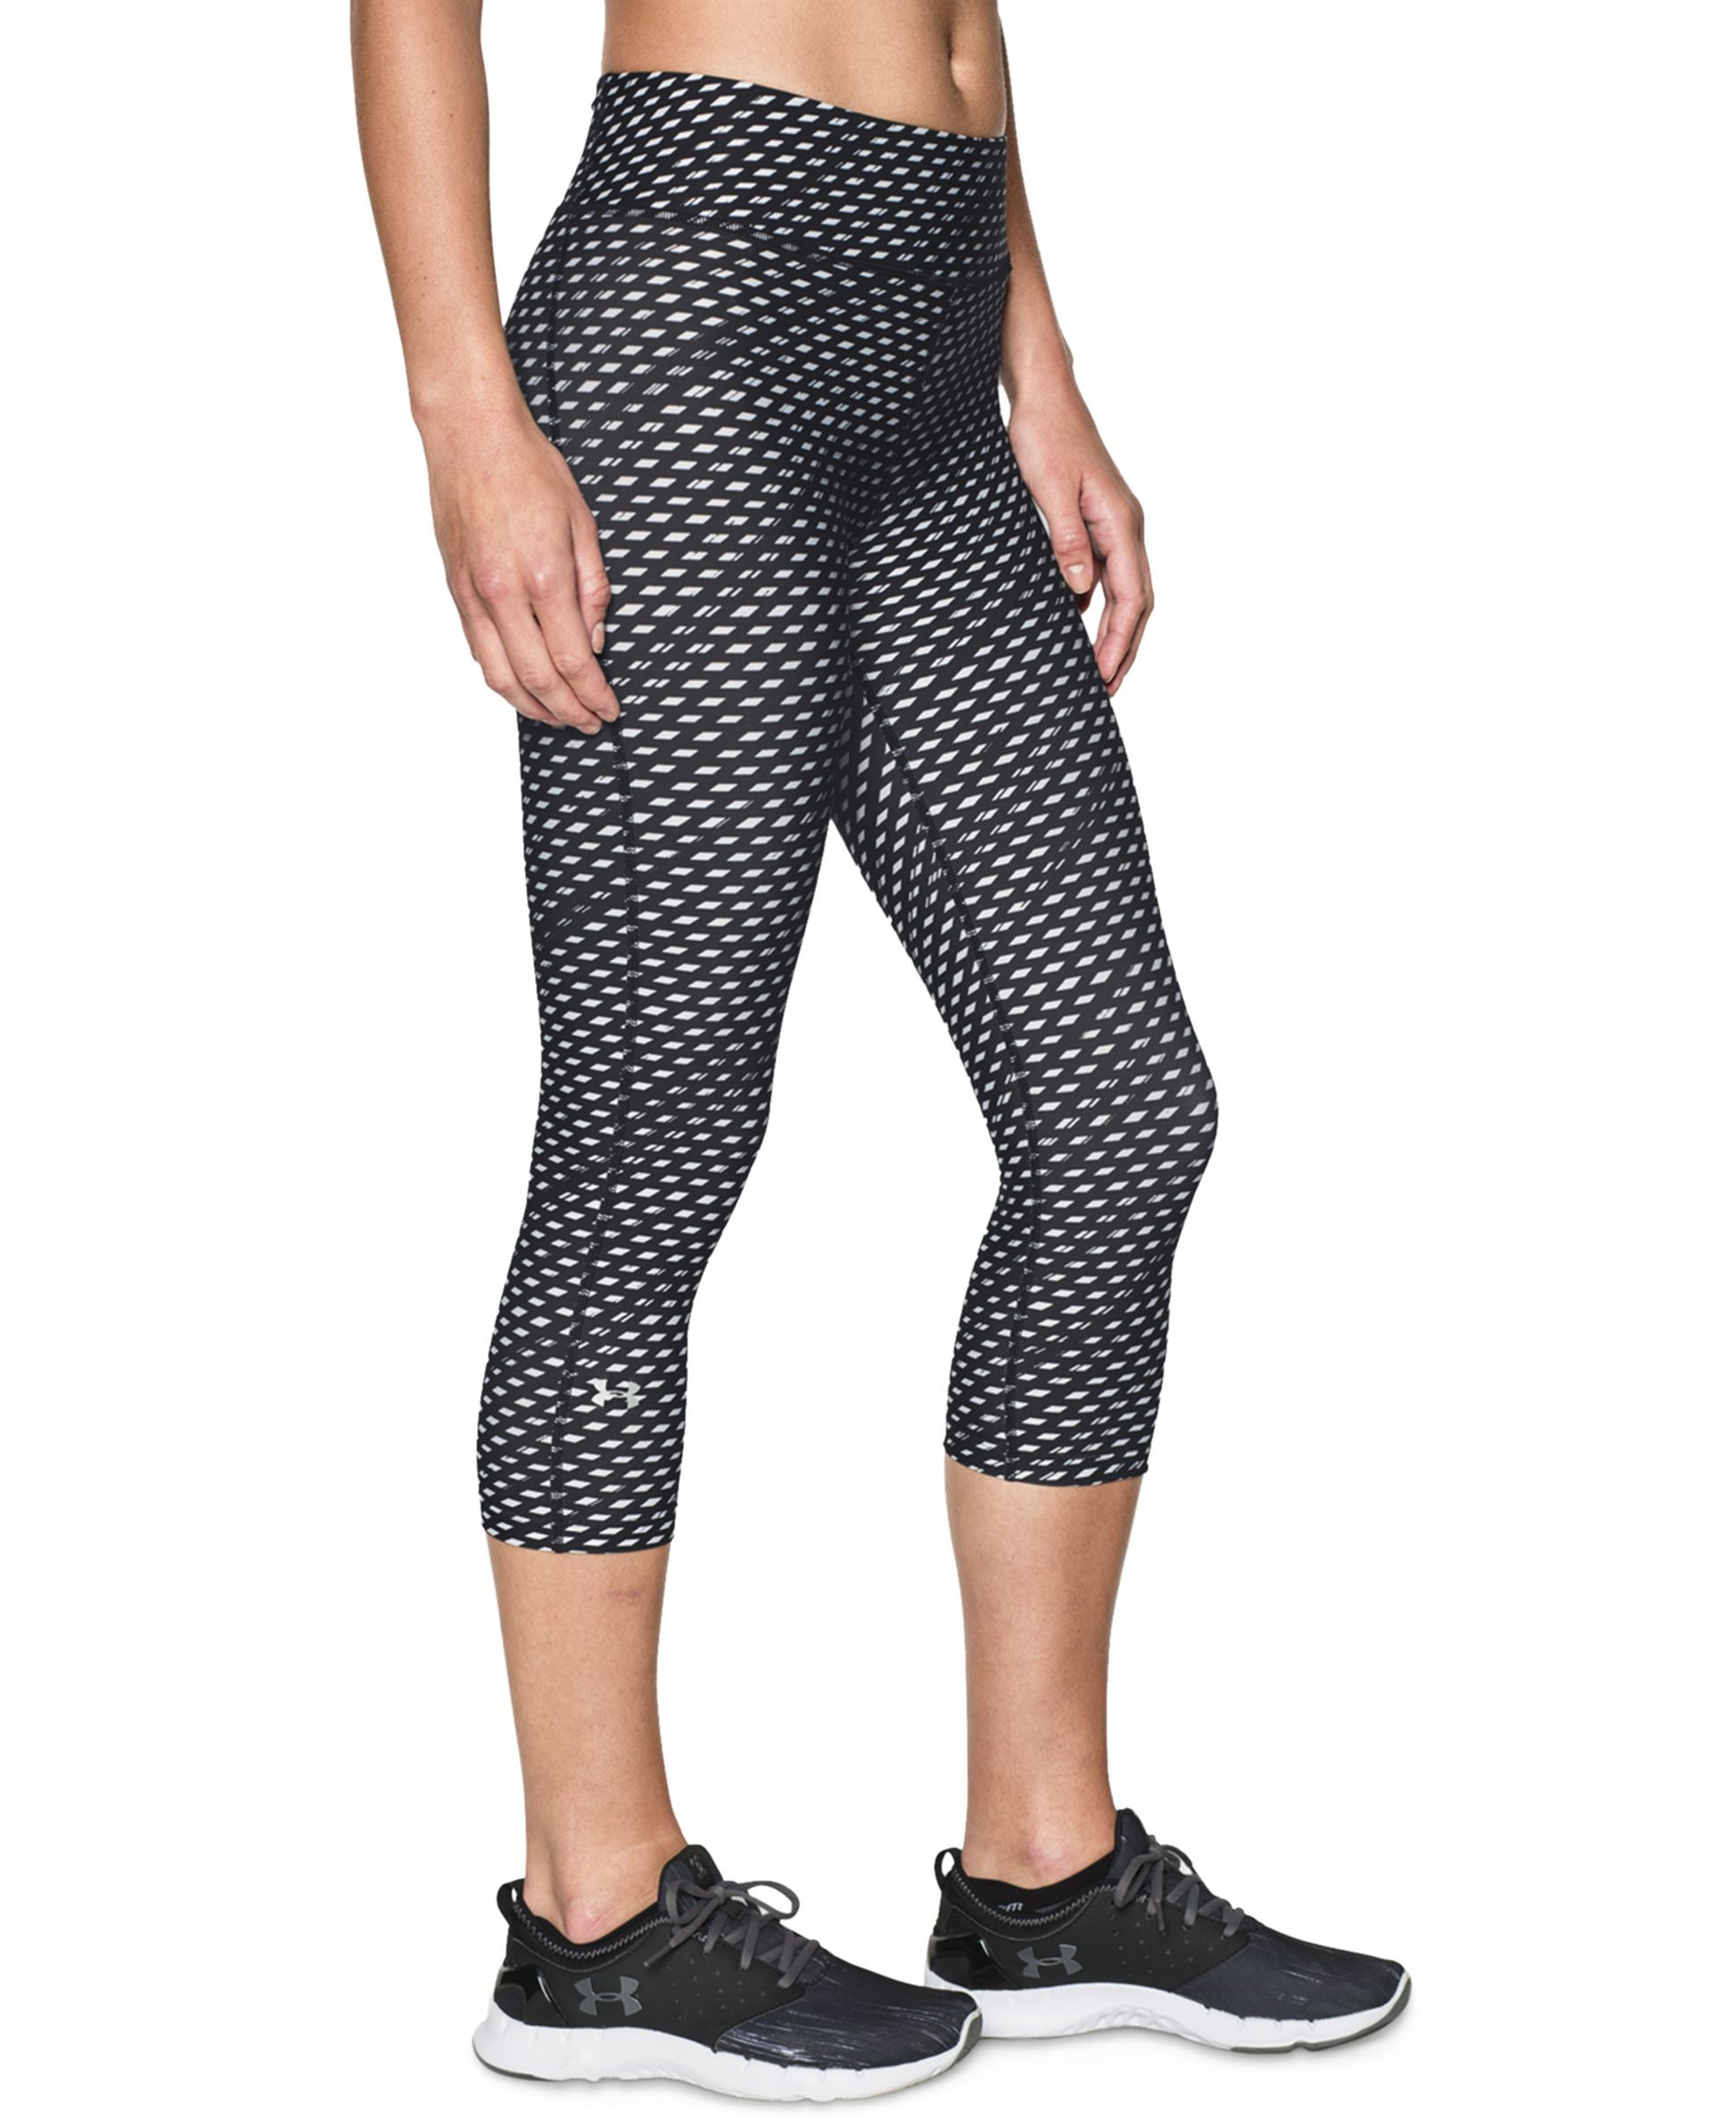 1a65640d236e2 Under Armour Alpha HeatGear Cropped Printed Leggings   Products ...